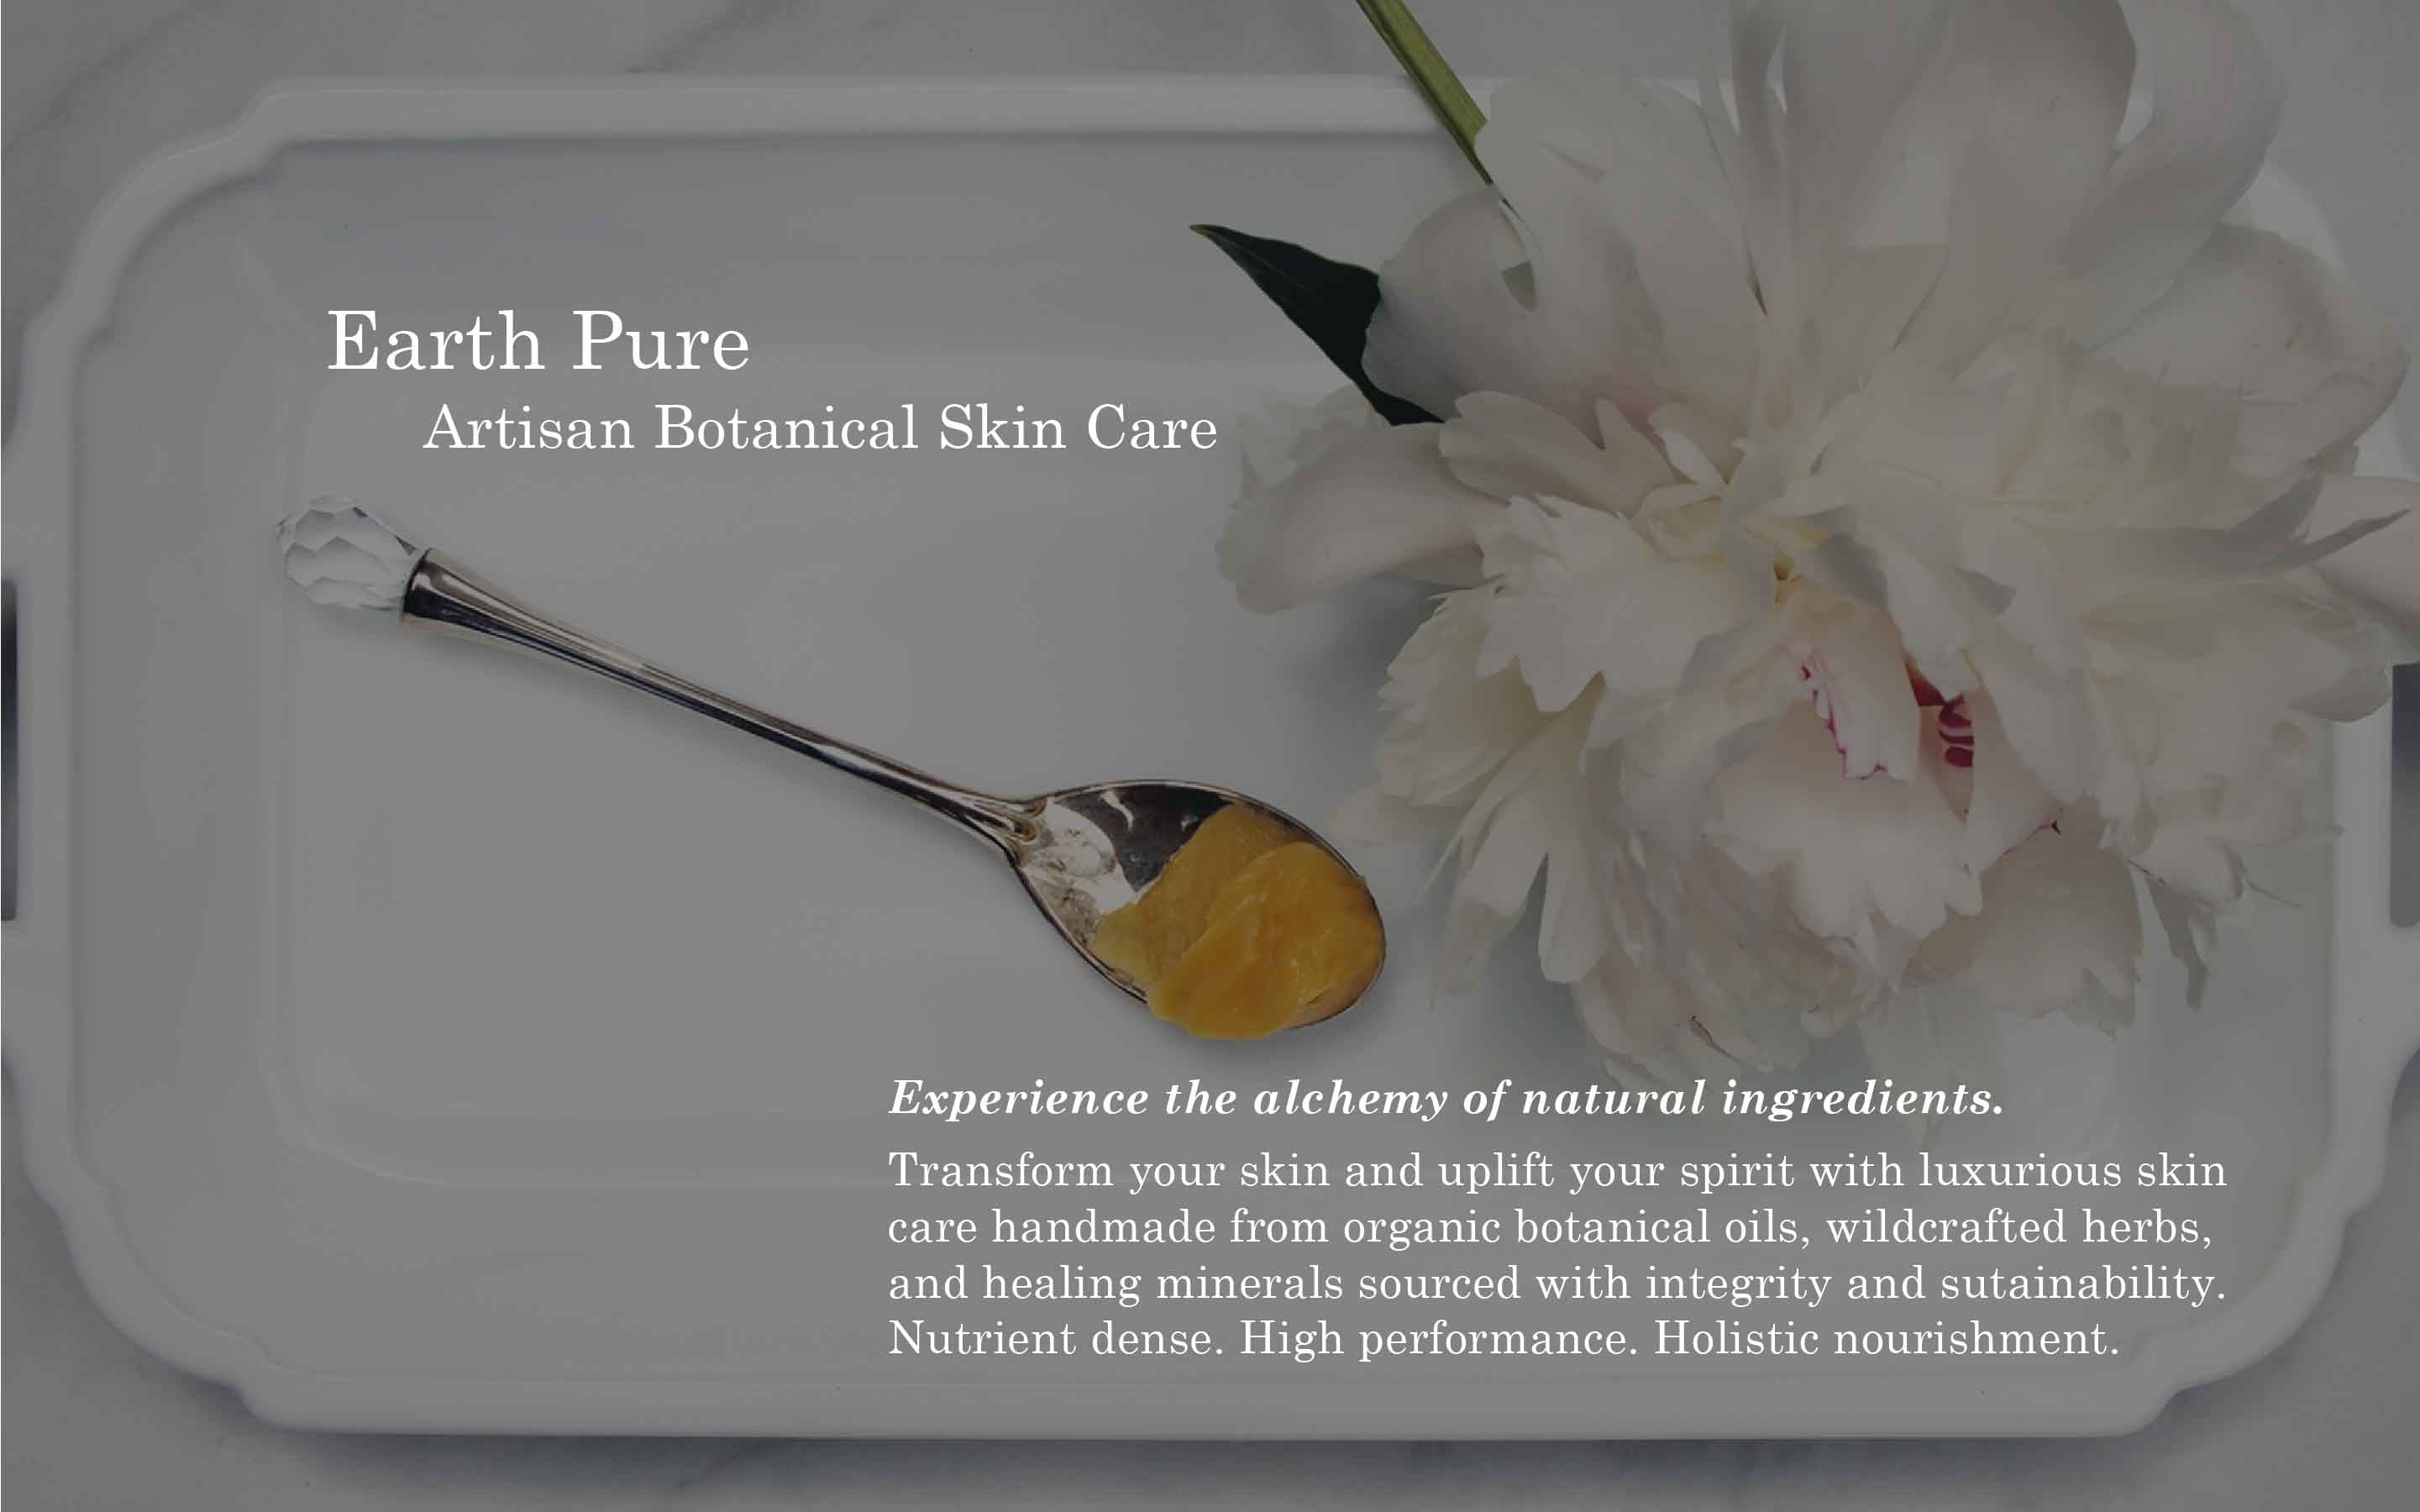 luxurious high performance organic skin care made by hand from sustainably sourced pure ingredients.